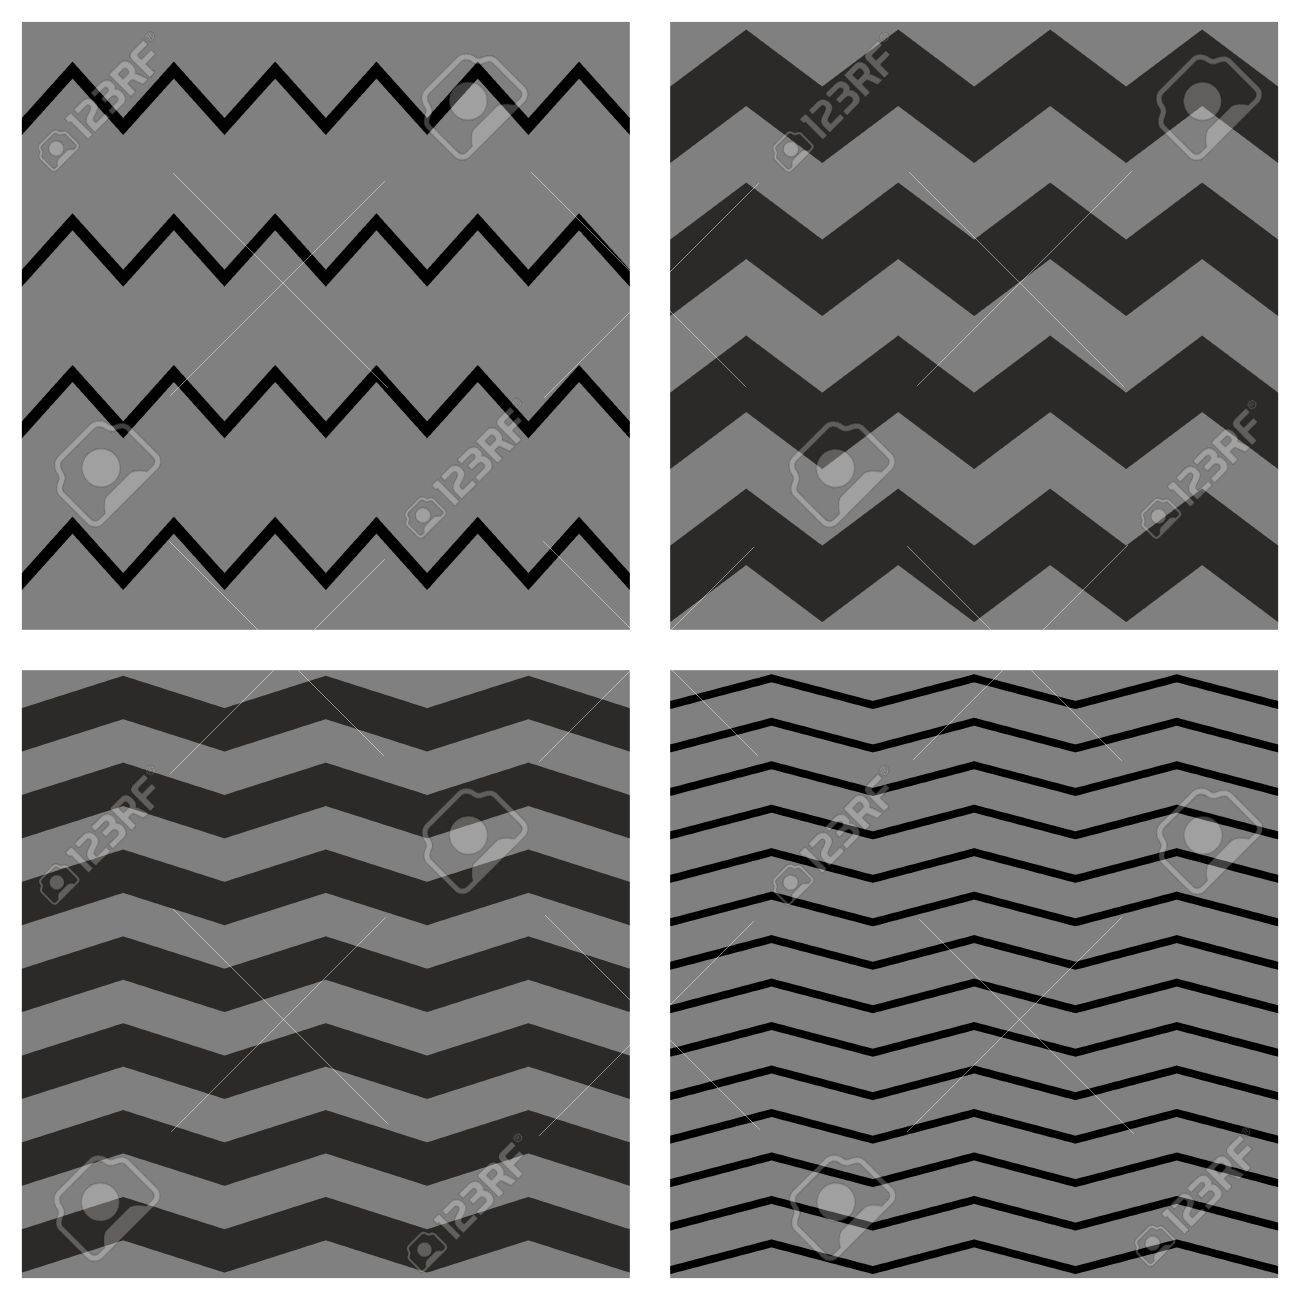 Chevron tile vector pattern set with black and gray zig zag background stock vector 39770049